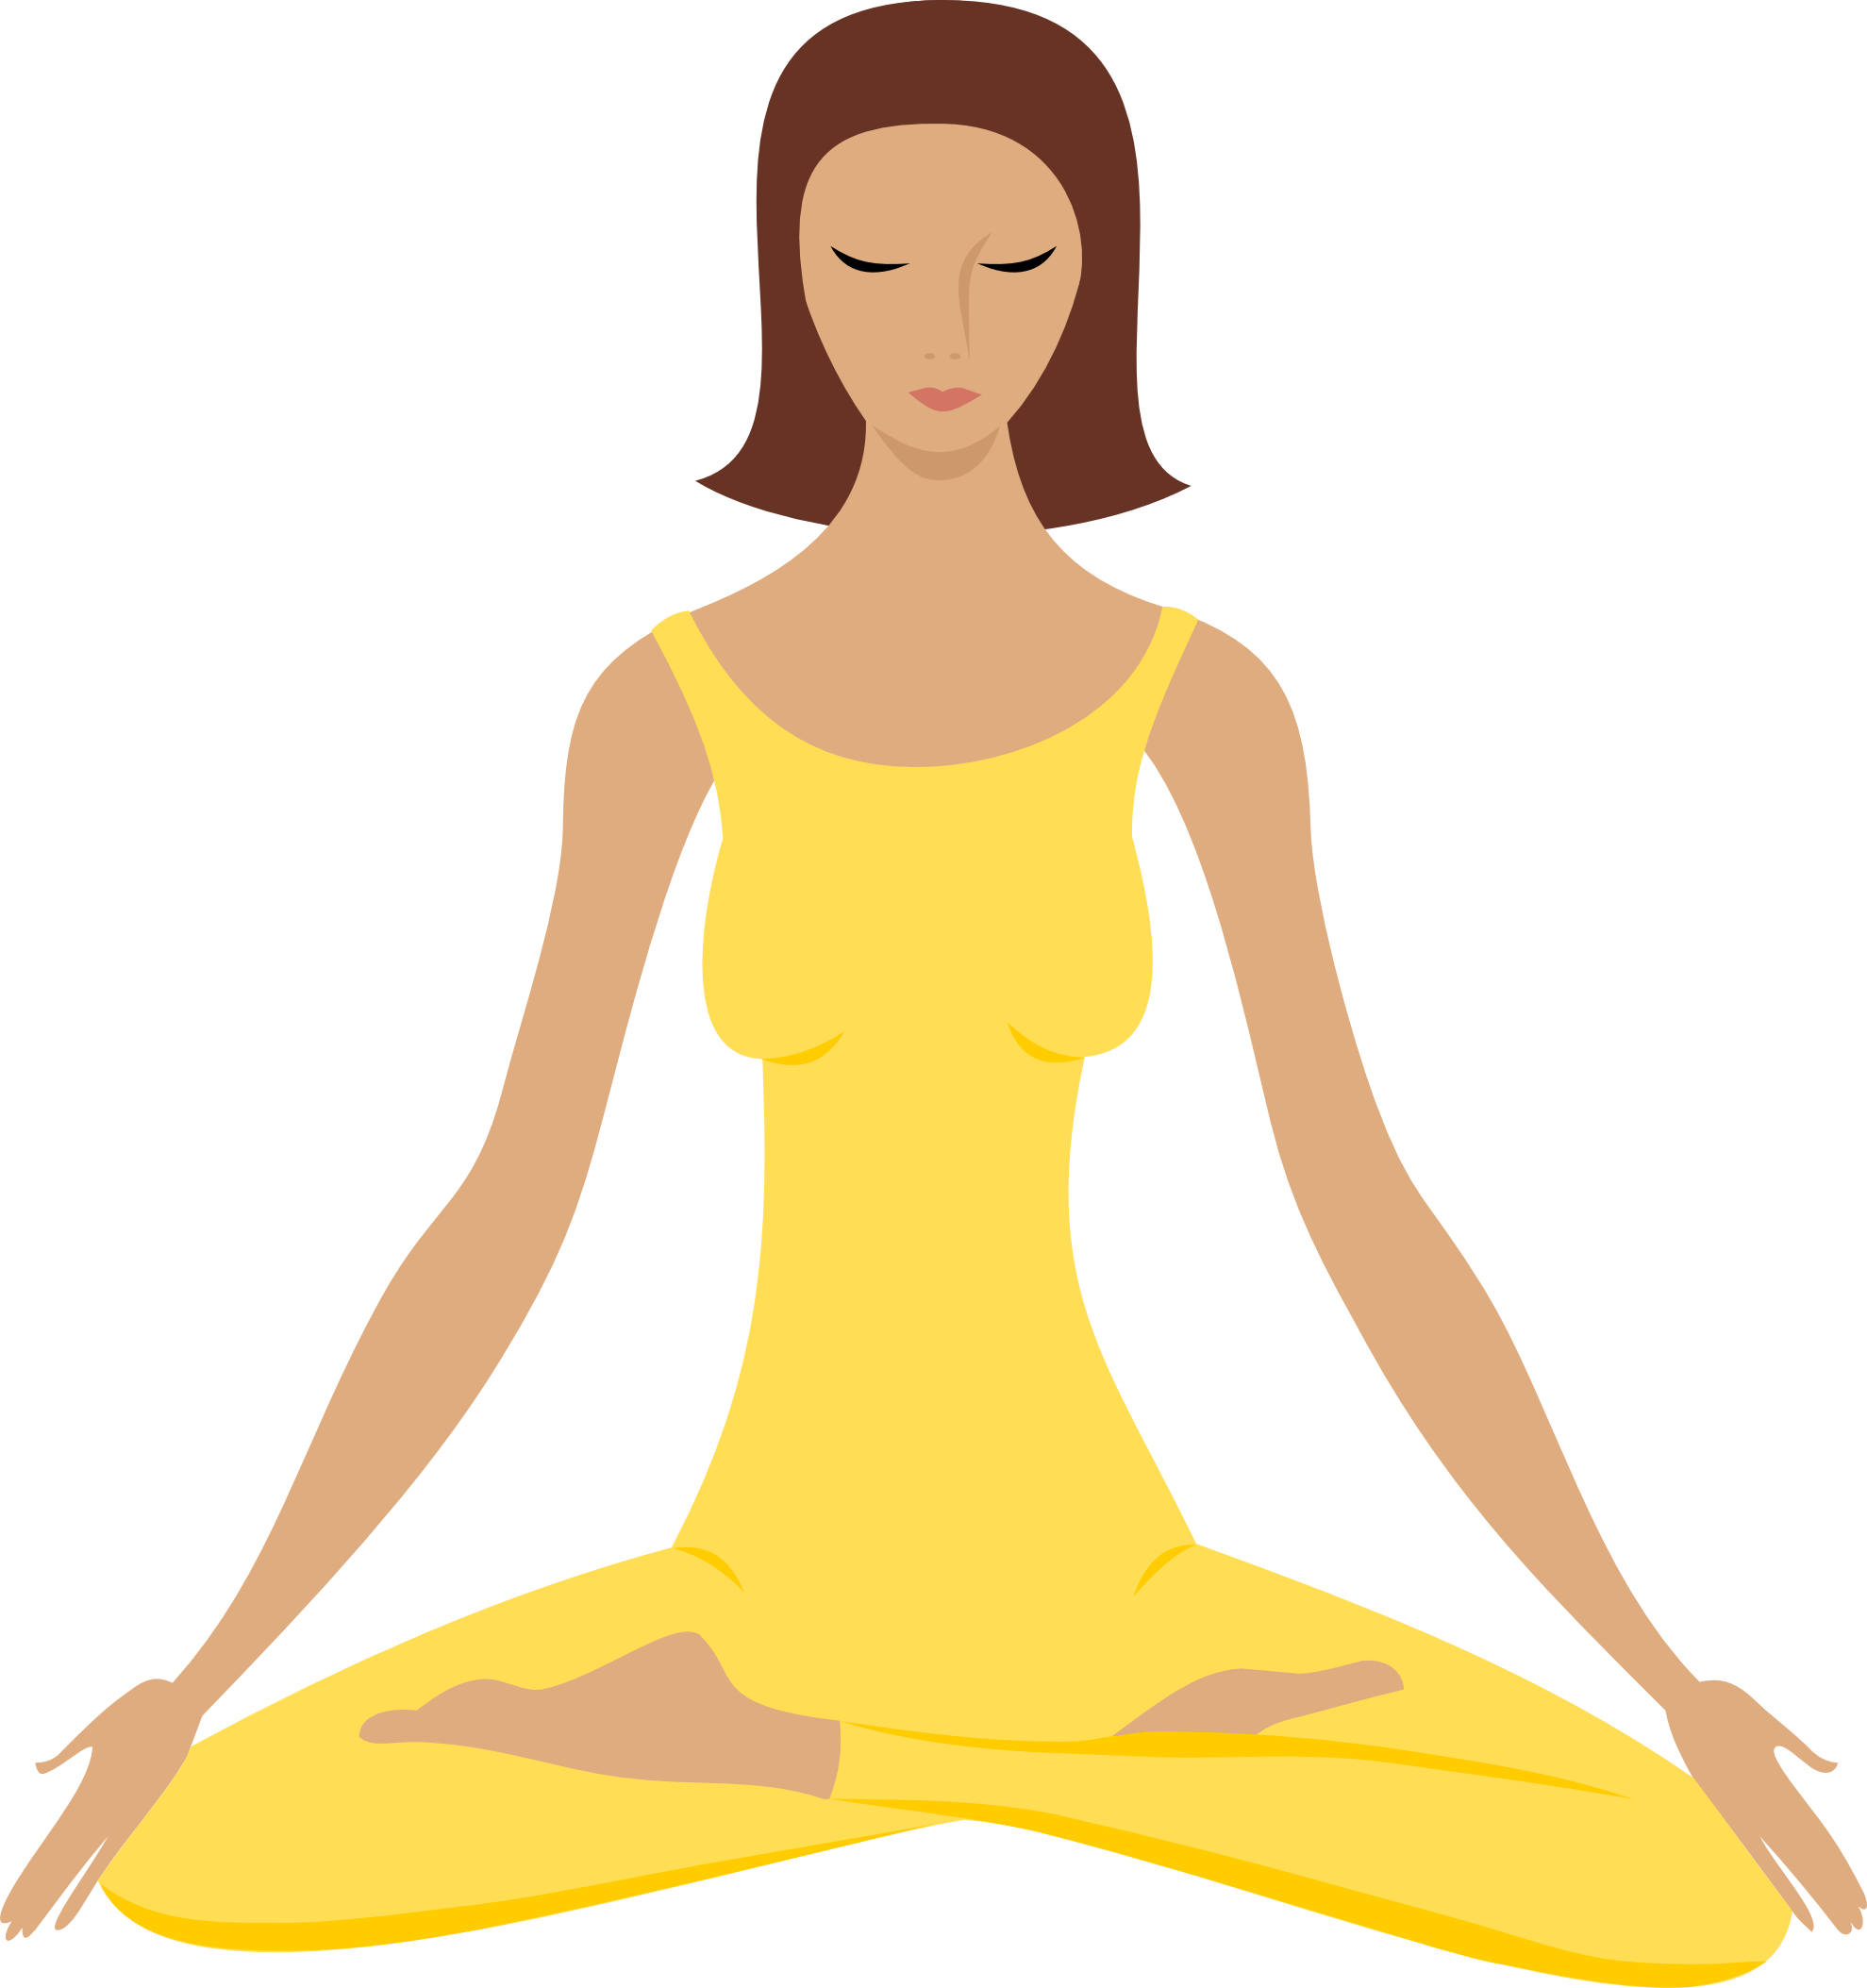 Free Meditation Cliparts, Download Free Clip Art, Free Clip.